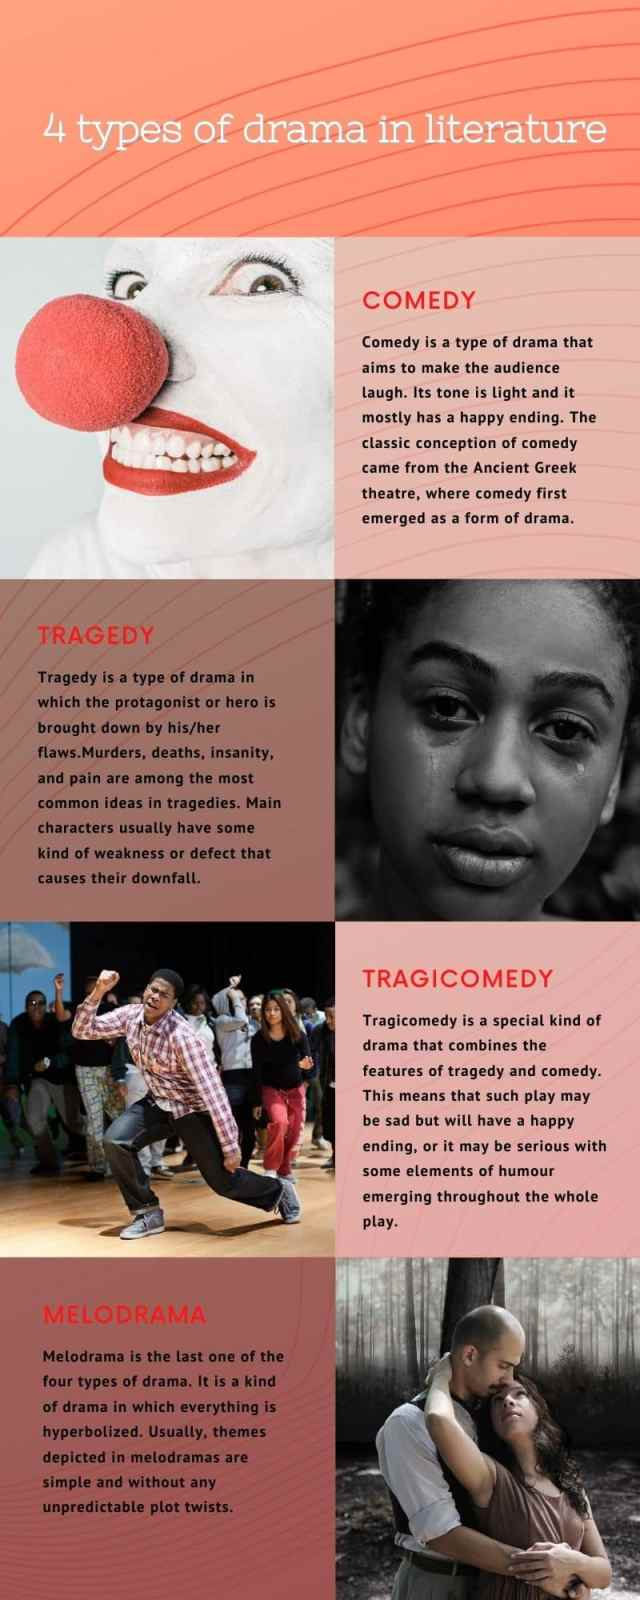 27 types of drama in literature with examples and explained ▷ Legit.ng